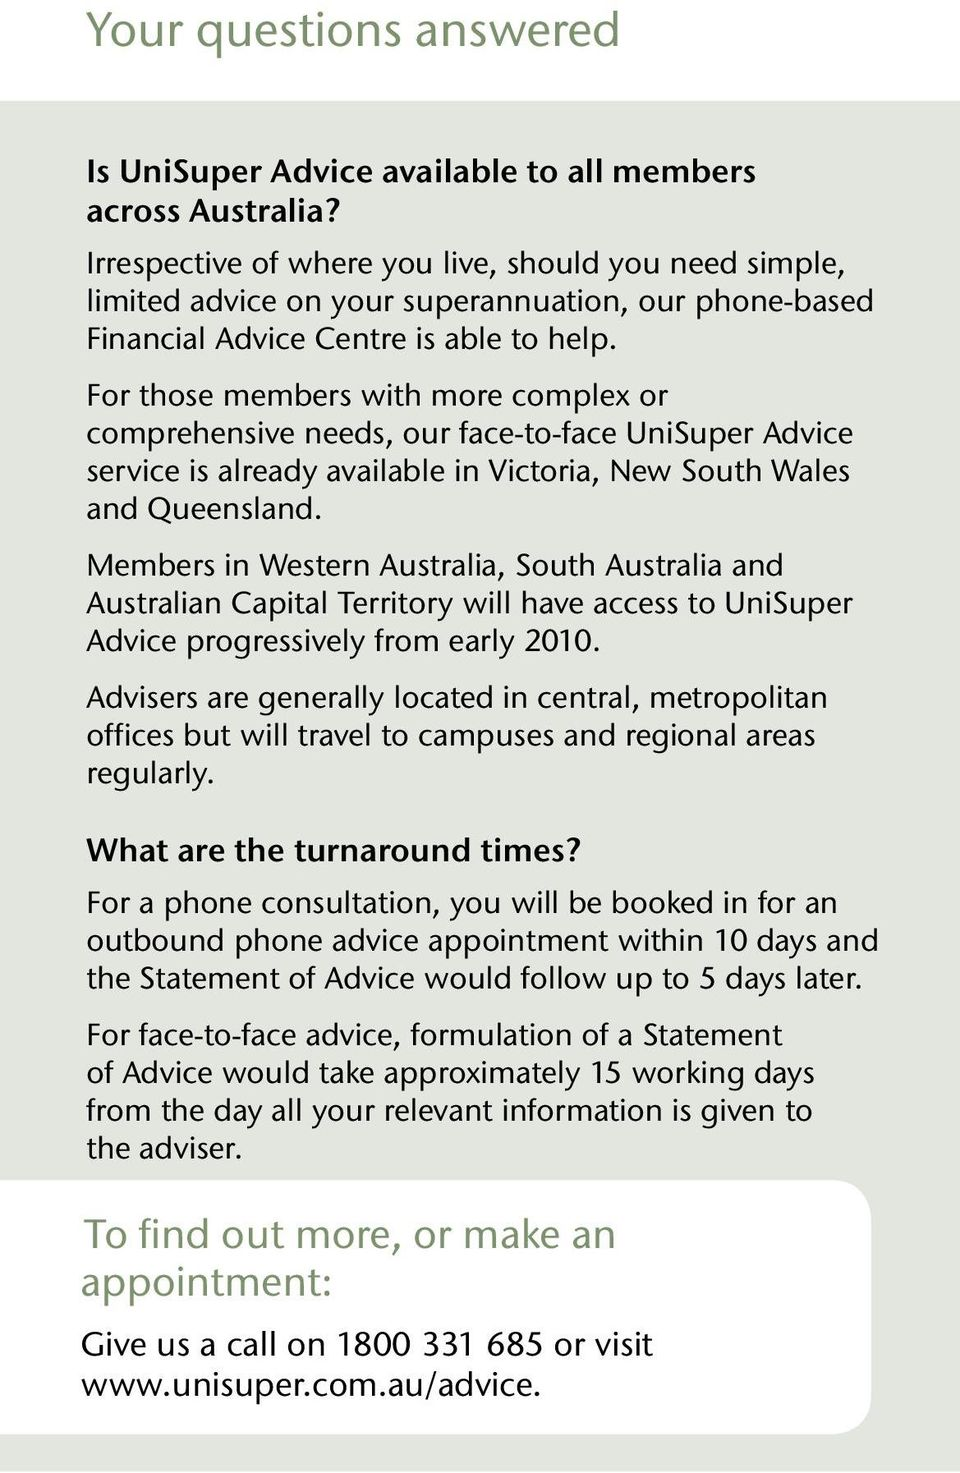 For those members with more complex or comprehensive needs, our face-to-face UniSuper Advice service is already available in Victoria, New South Wales and Queensland.